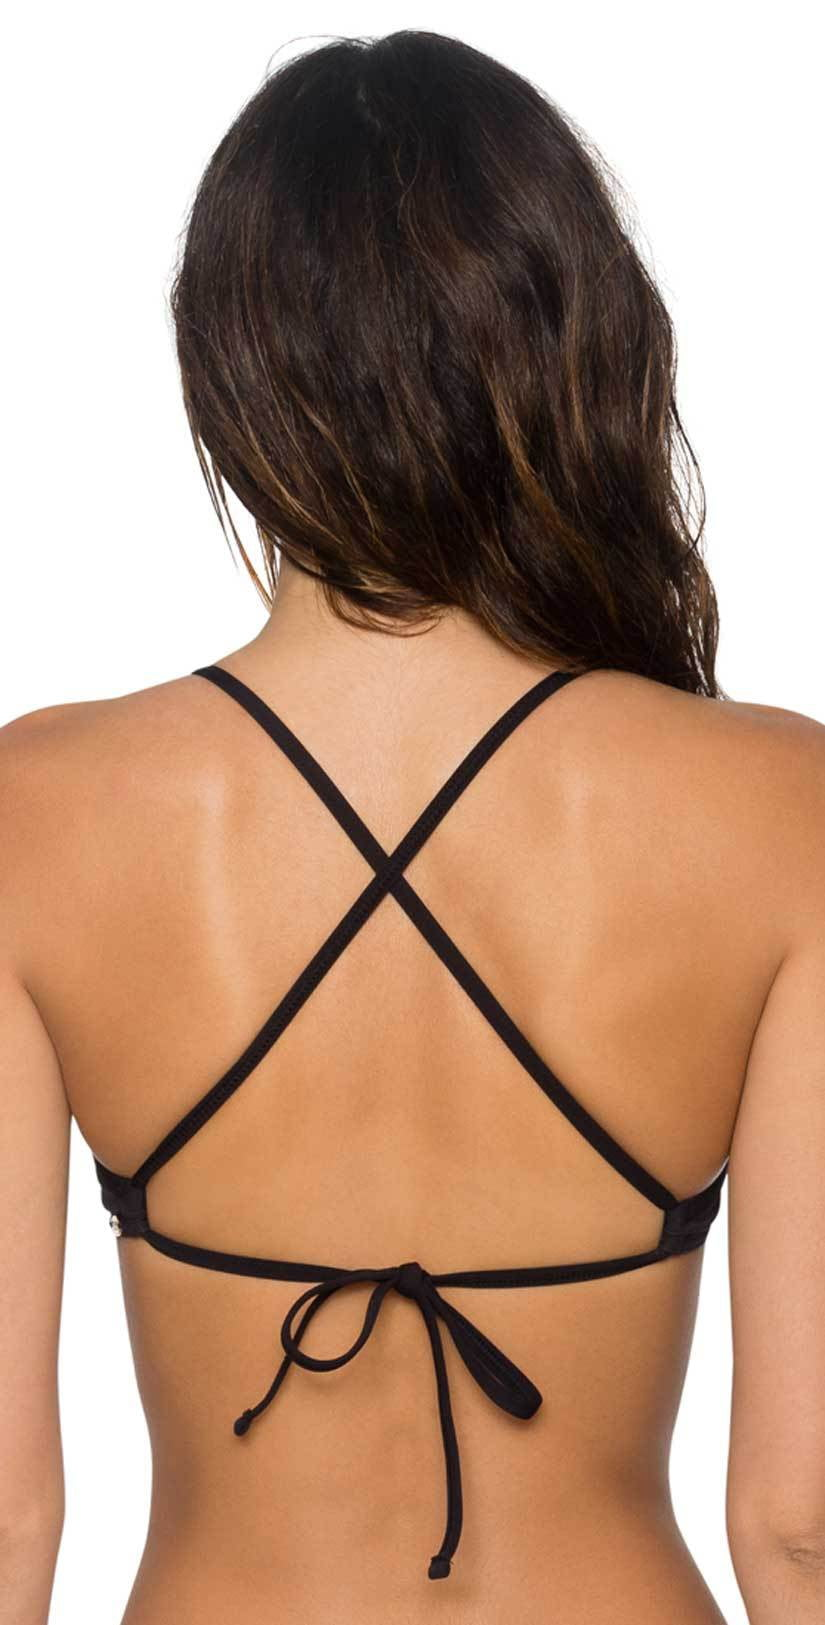 Sunsets Jayne X-Back Underwire Top in Black 60T-BLCK: